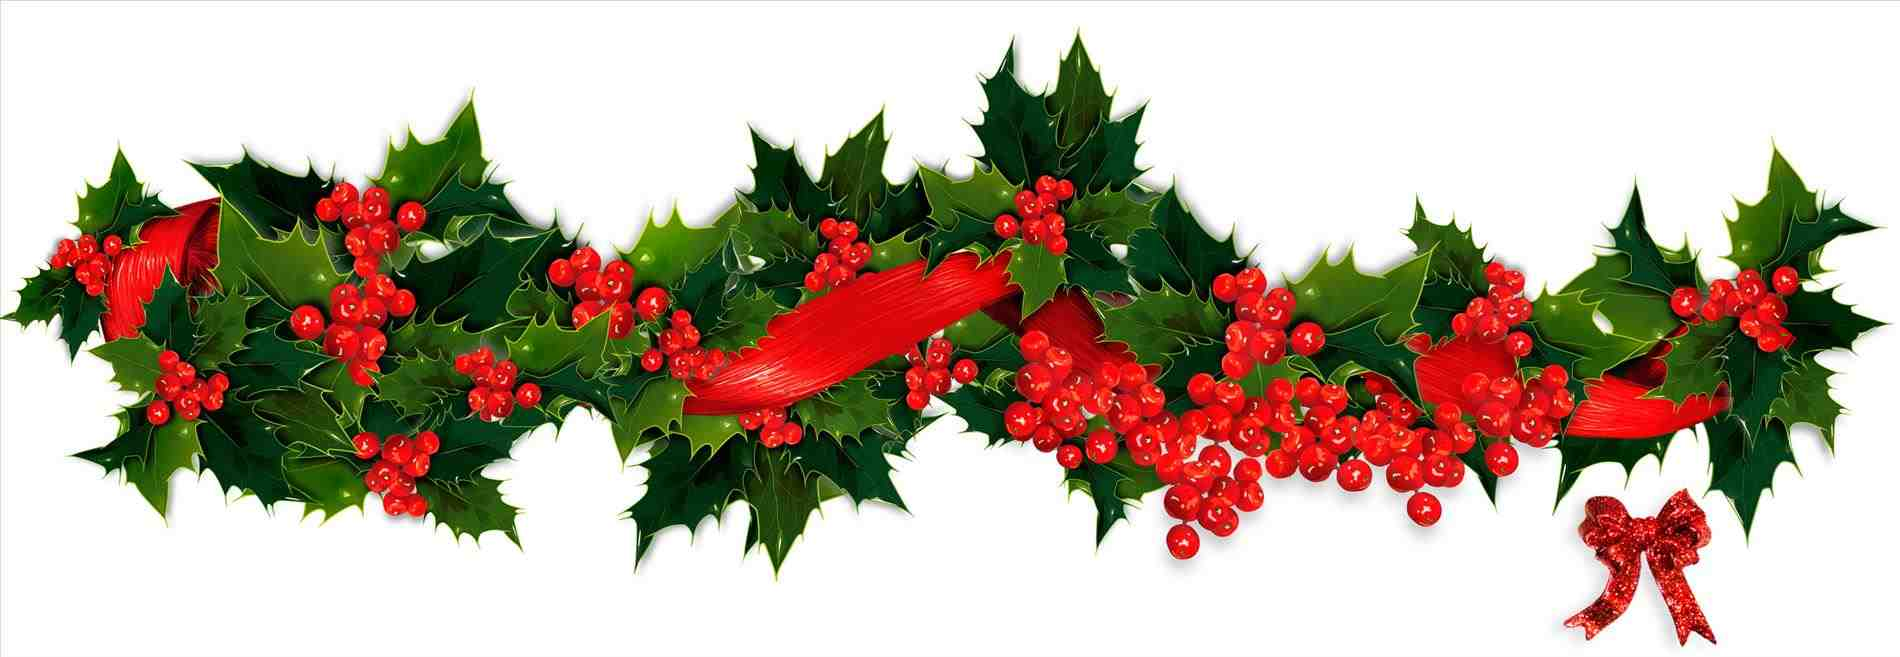 1900x657 Christmas Holly Border Clip Art Transparent Png Image Gallery